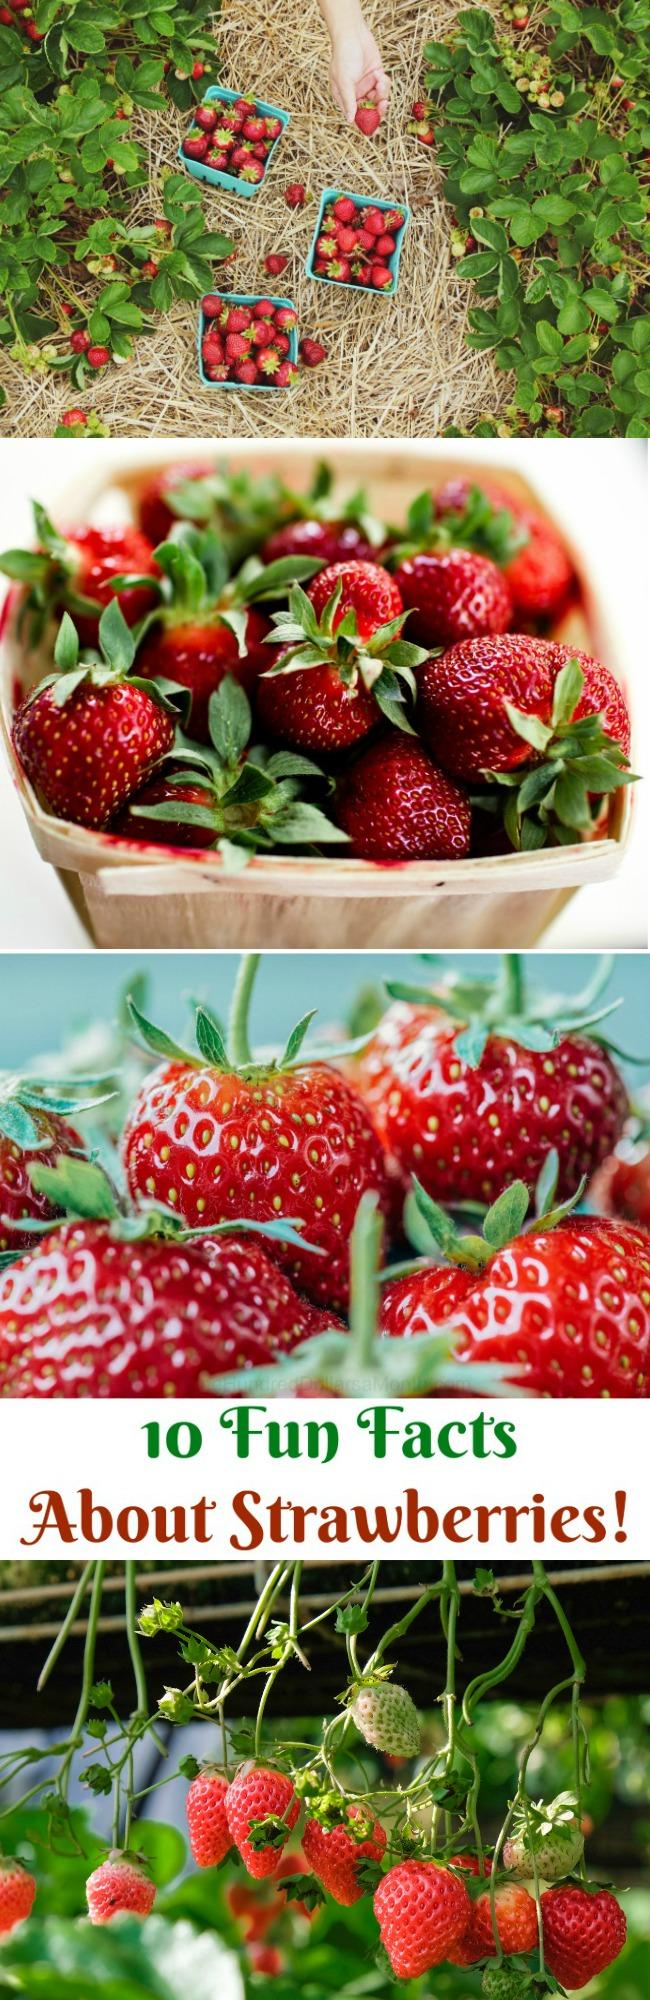 10 Fun Facts About Strawberries!